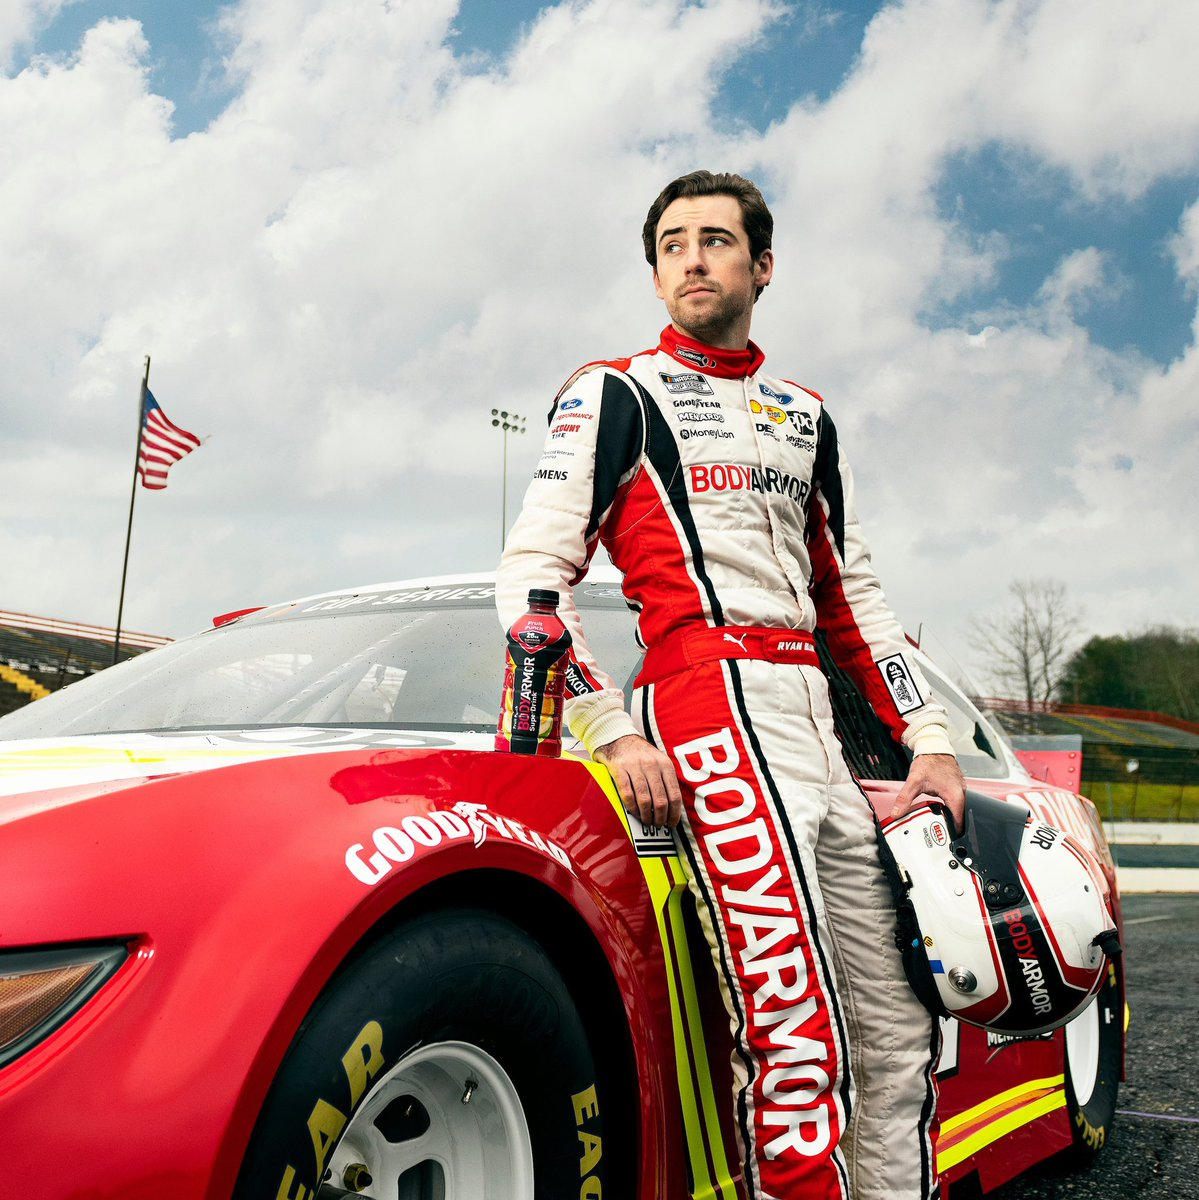 Ryan Blaney On Twitter Only You Can Make You Better Working Harder To Get Better With Every Single Race Post A Pic Or Video Of Yourself With Drinkbodyarmor And Share How You Ve Ryan blaney, kyle busch involved in stage 1 wreck. ryan blaney on twitter only you can